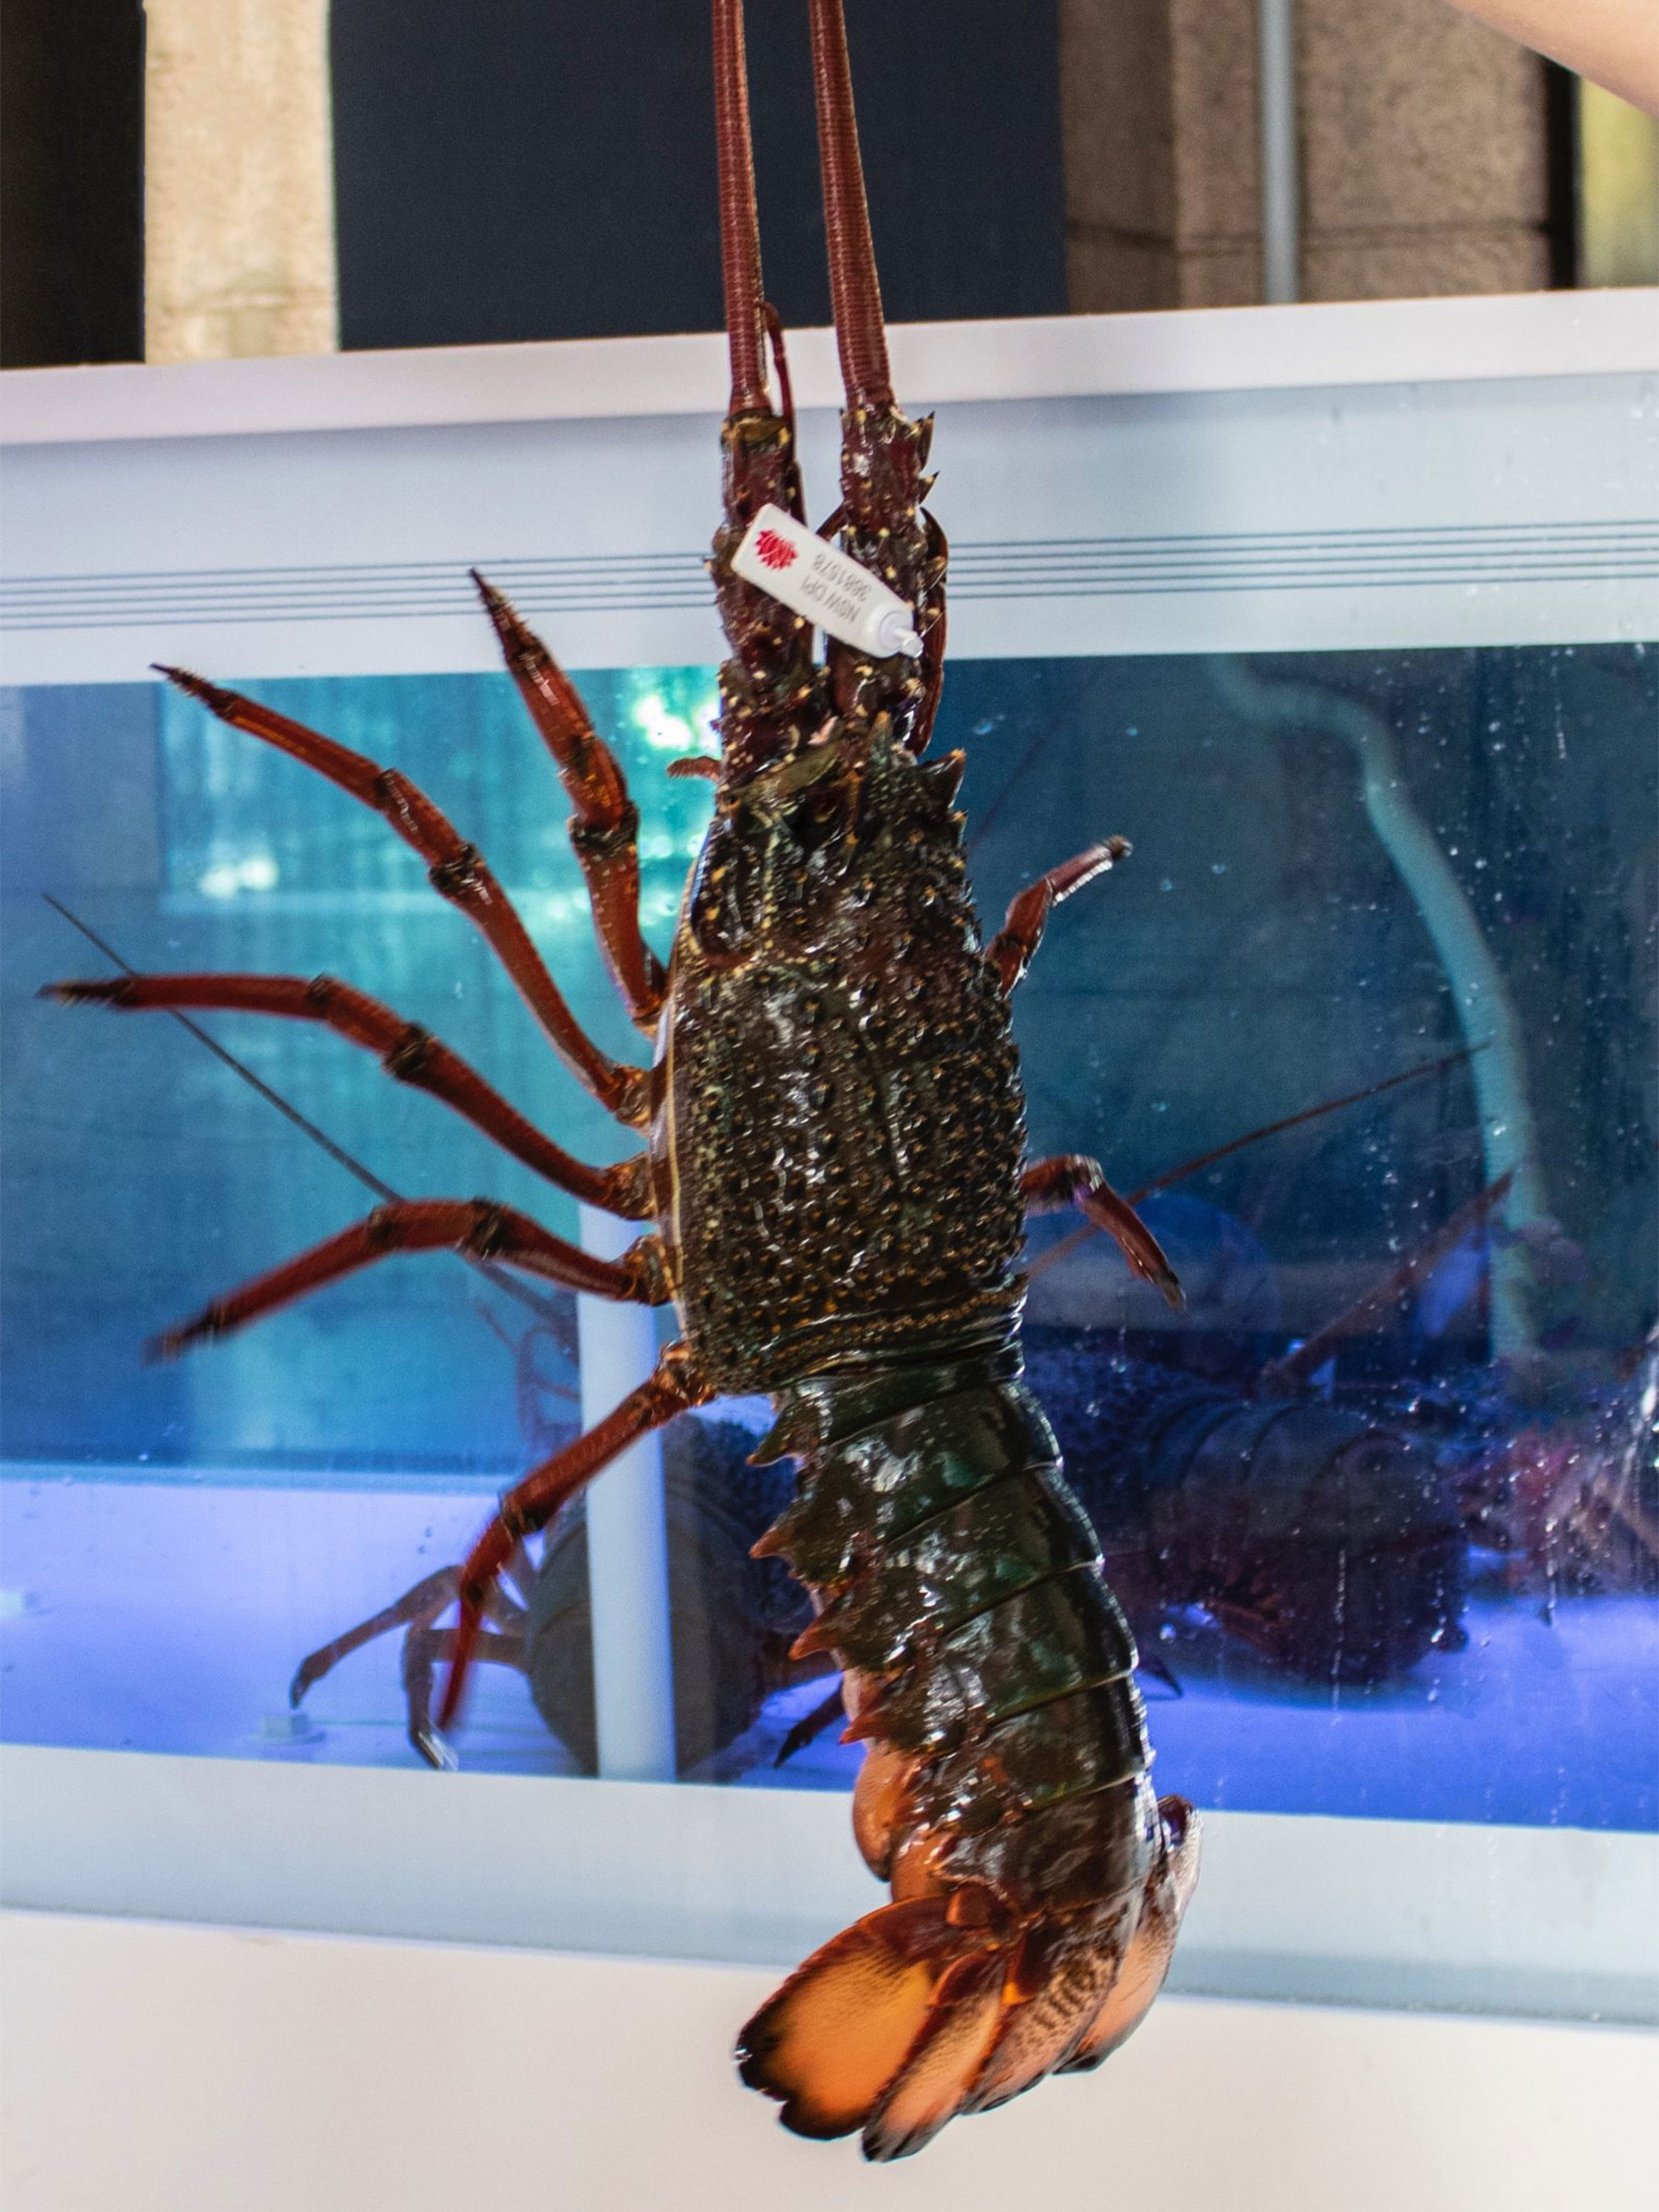 The secret of keeping the 'freshness' of the lobsters at Nick's restaurants